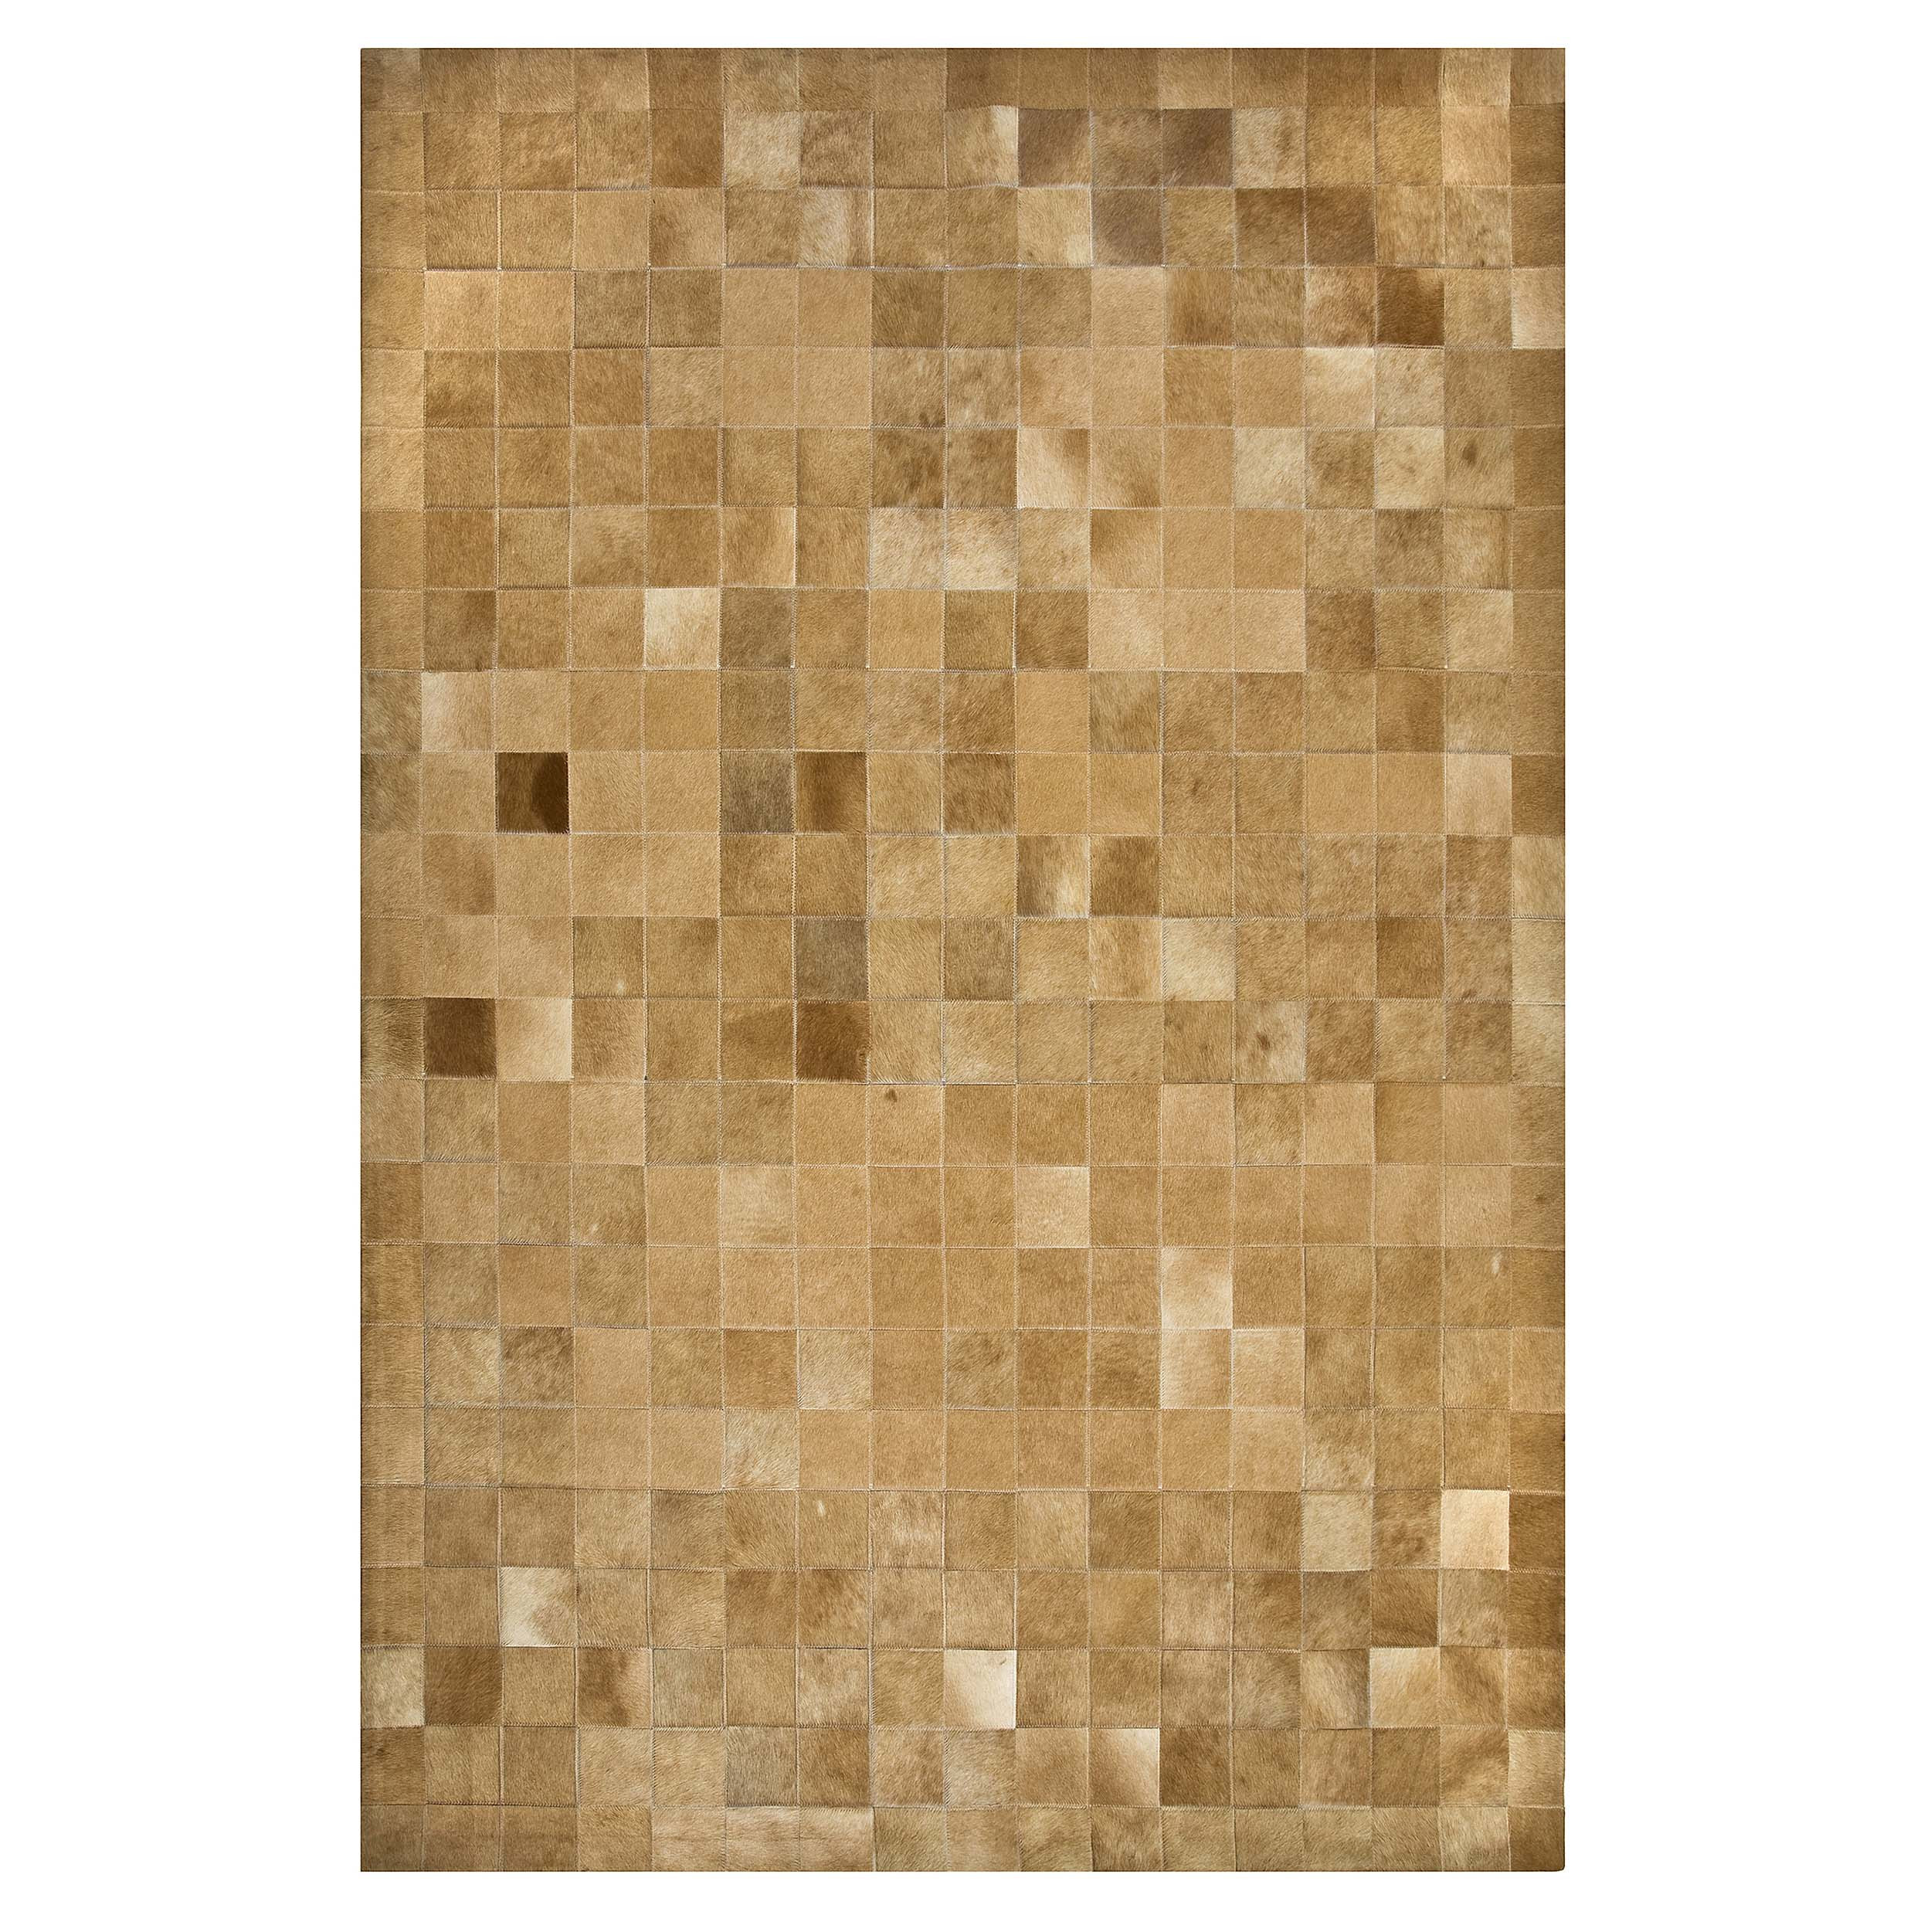 TAPETE COURO NATURAL GOLD LEAT - 3,00x4,00